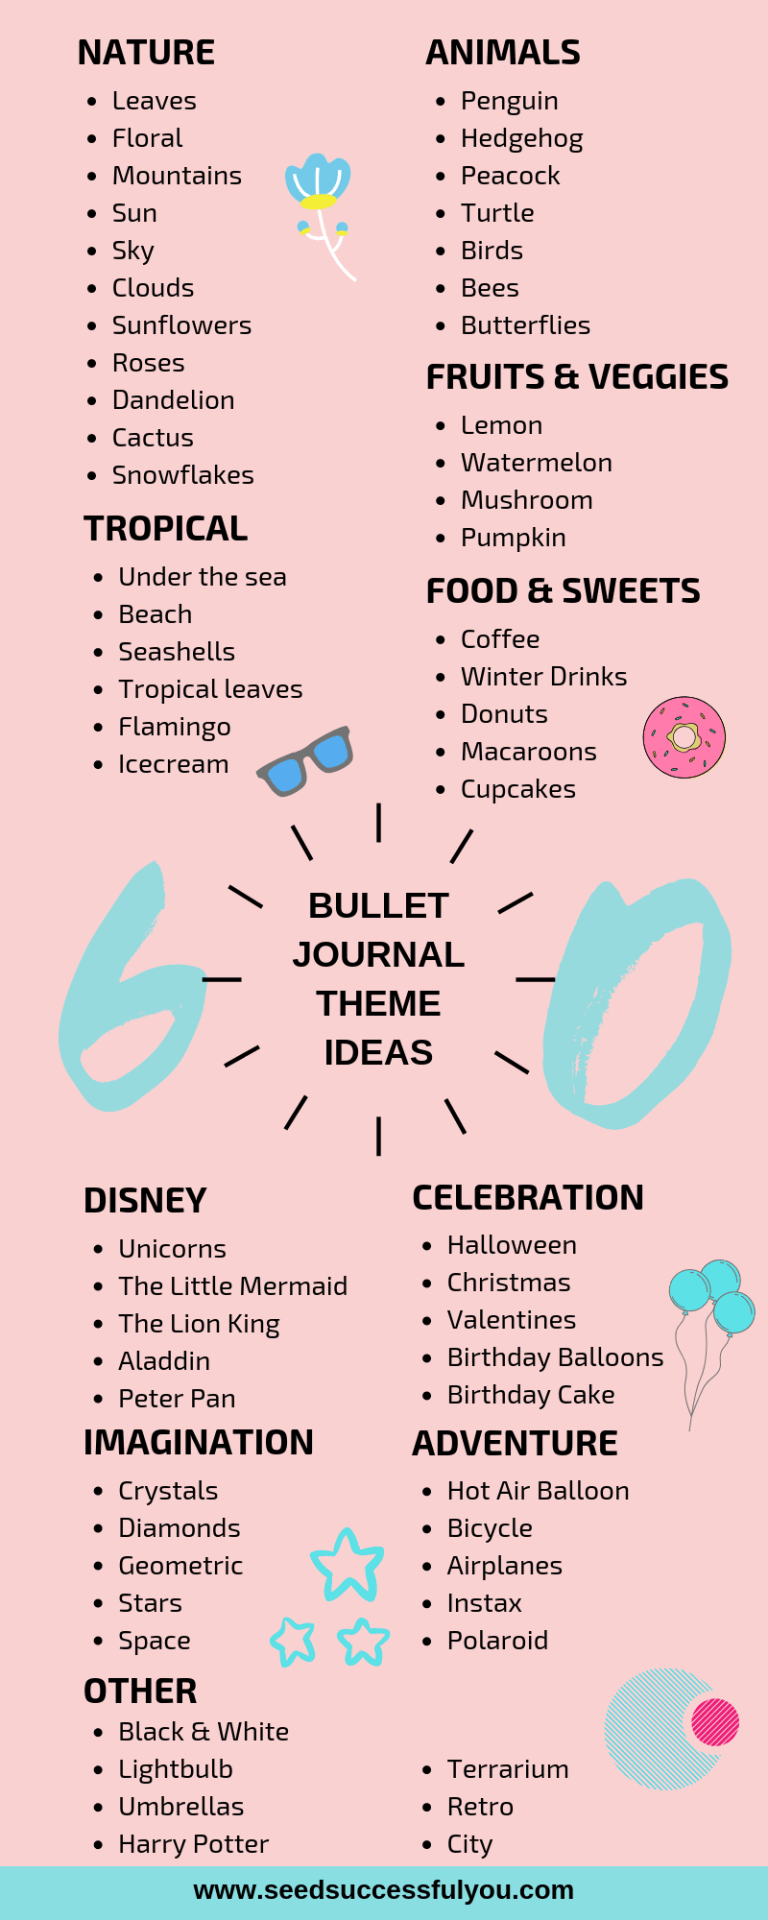 60 Inspiring Bullet Journal Themes to Try Out